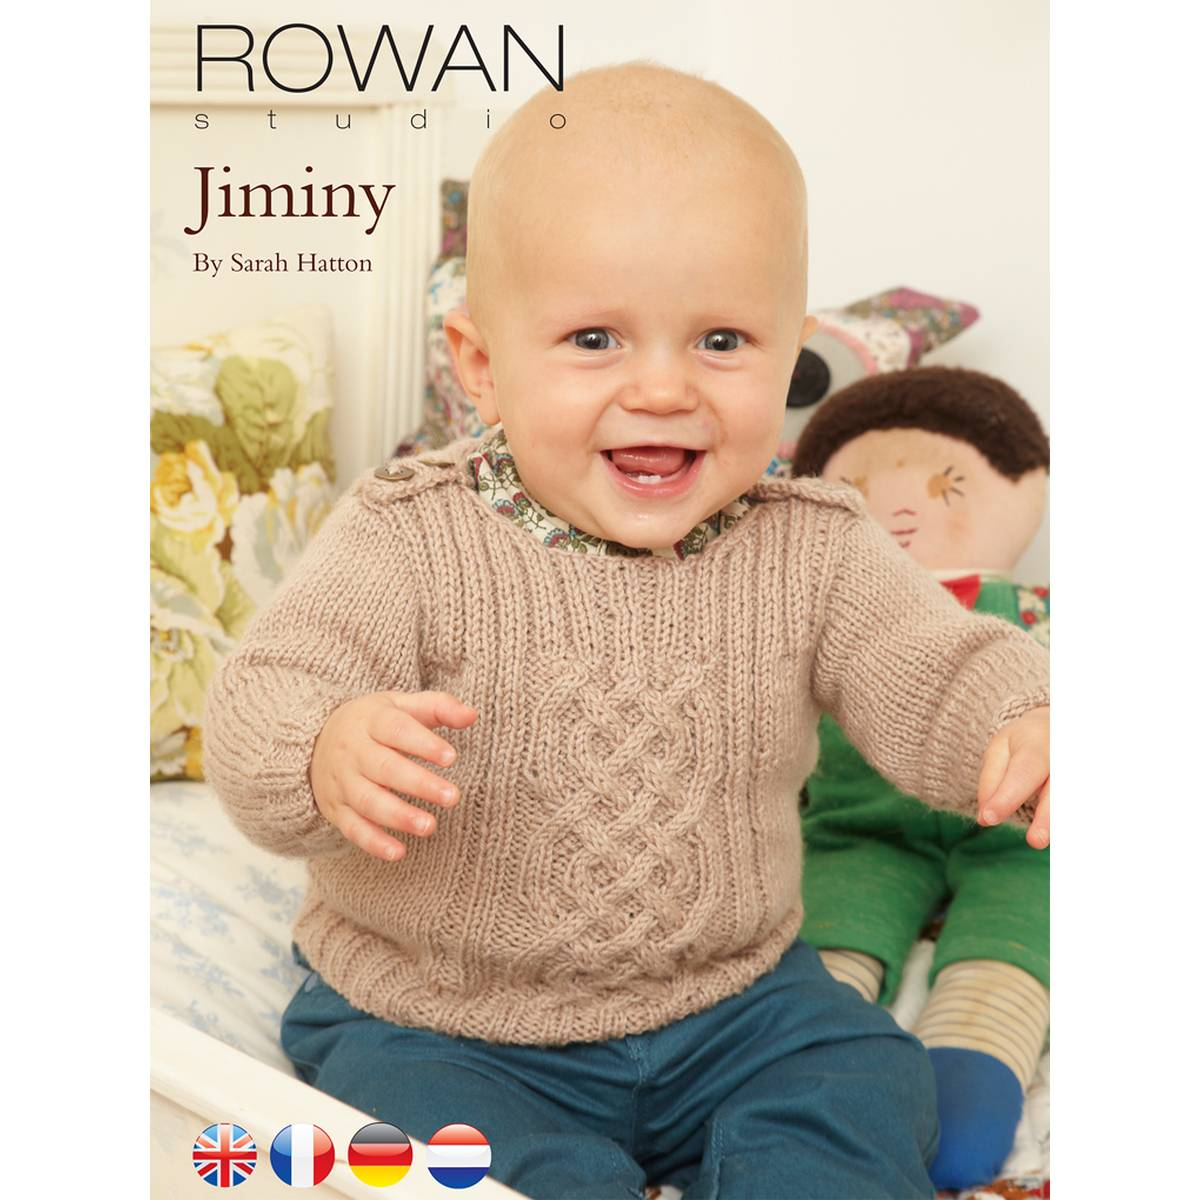 Knitting Patterns For Childrens Sweaters Free Free Pattern Rowan Jiminy Cable Sweater Hobcraft